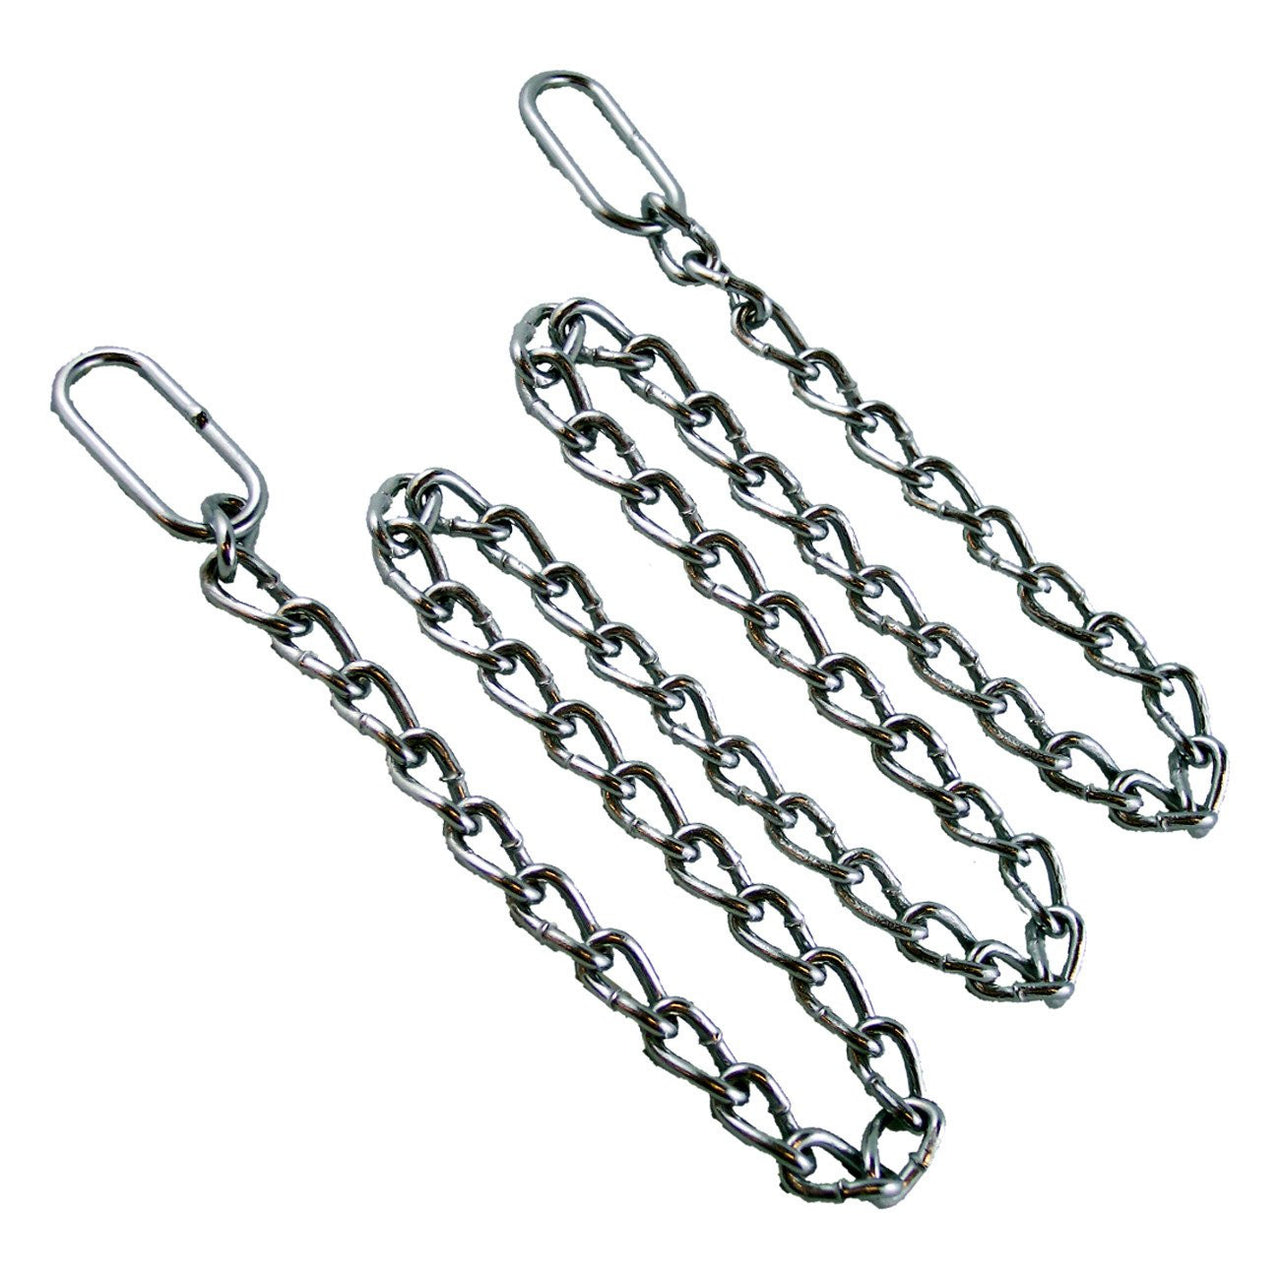 Cattle Boss Obstetric Chain 114Cm (45) Length - Veterinary Instrumentation Cattle Boss - Canada